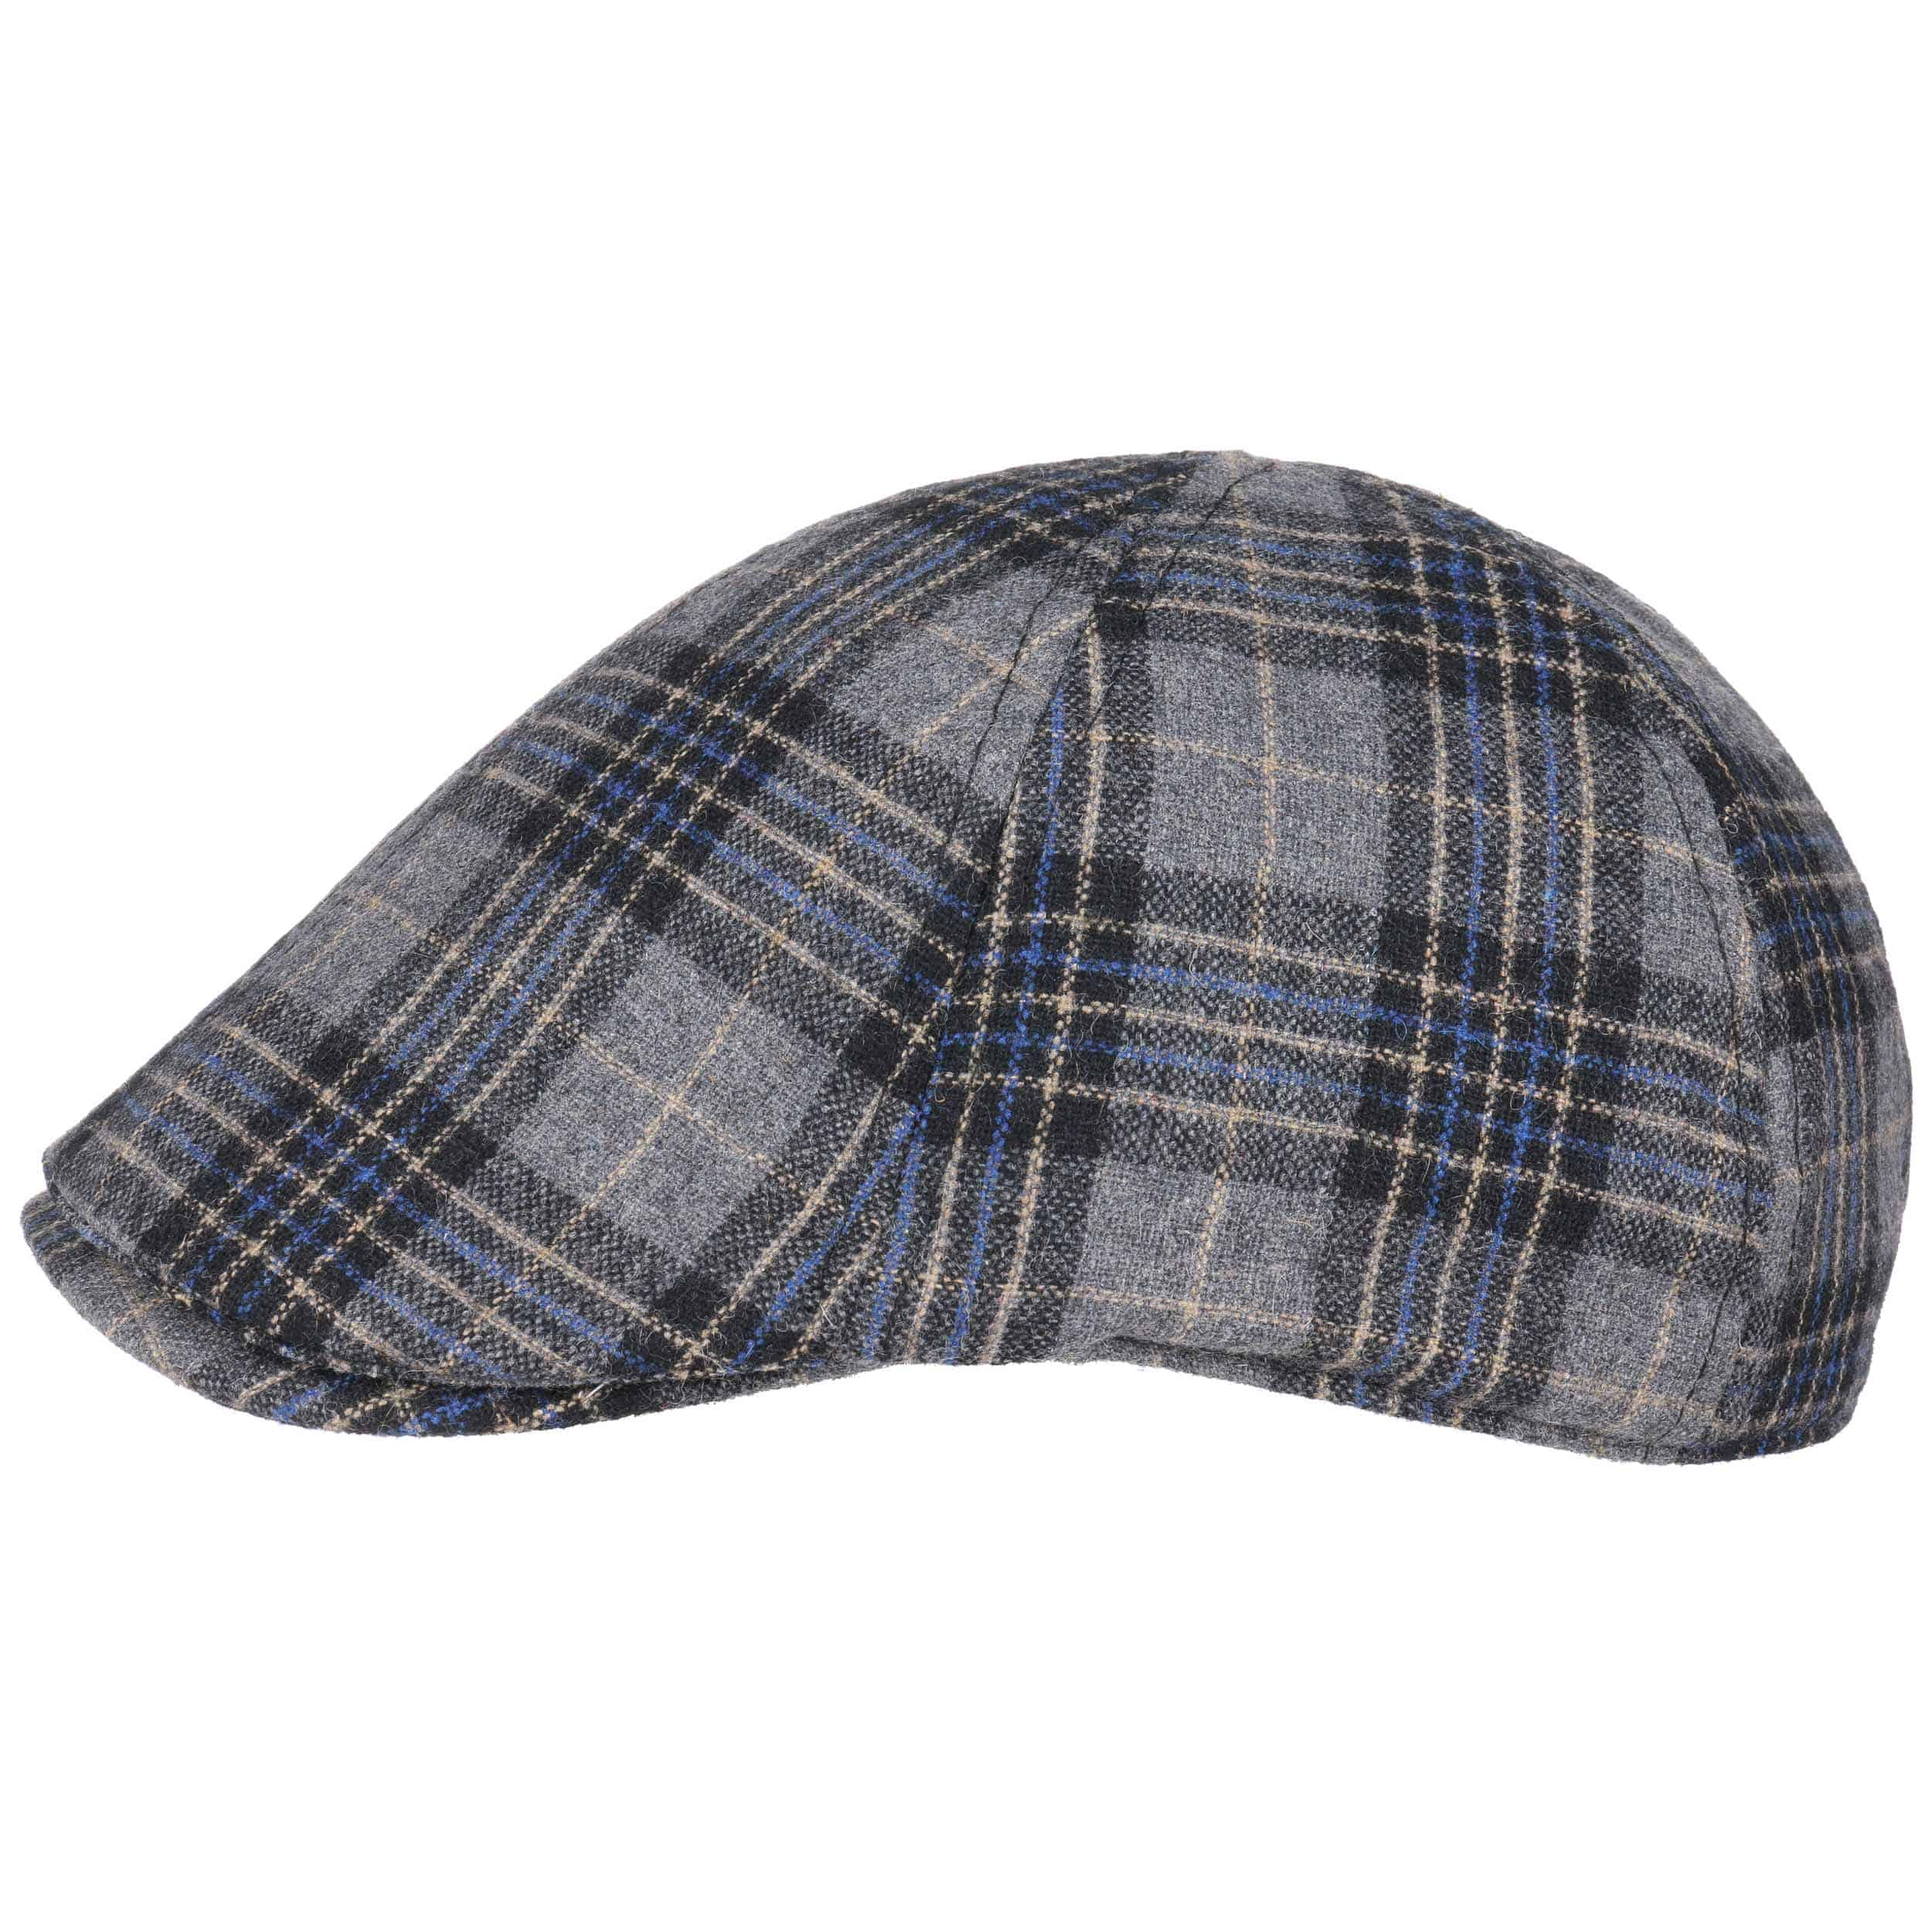 ... Checked 6 Panel Flat Cap by Lipodo - grey 5 ... 3bc42537d03